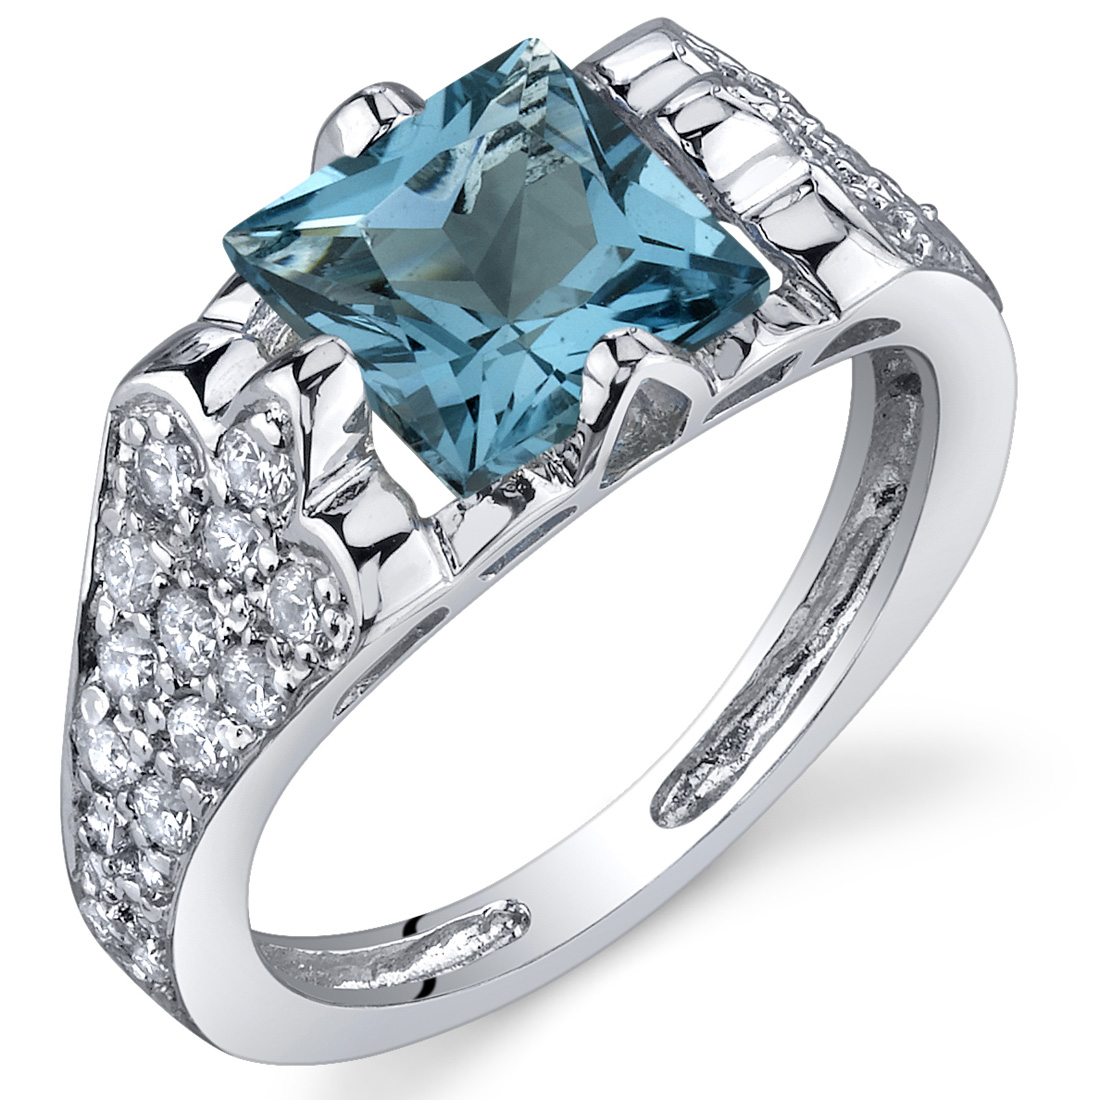 peora Elegant Opulence 1.75 Carats London Blue Topaz Ring in Sterling Silver Available in Sizes 5 to 9